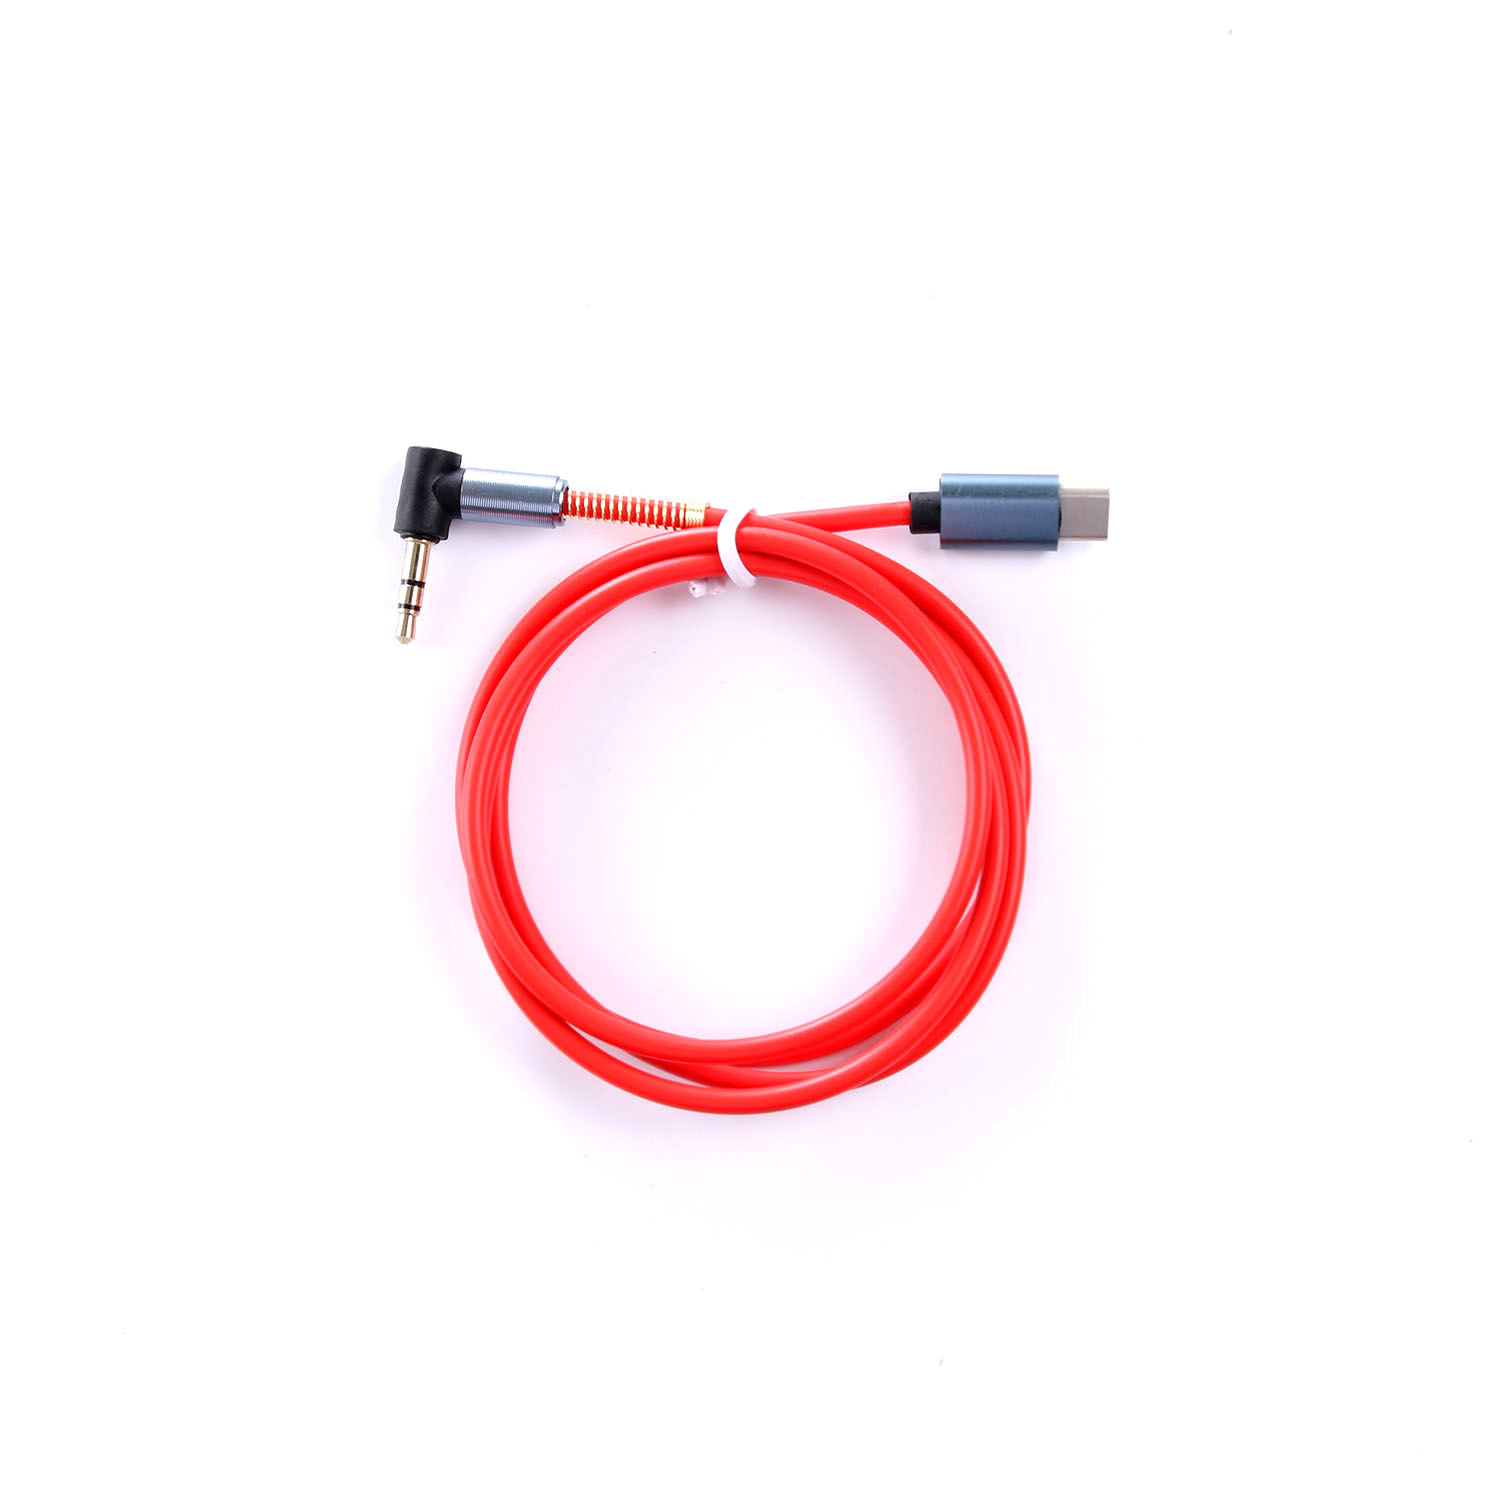 Bakeey Type C To 3.5mm Jack 90 Degree Right Angle Round Audio AUX Cable For Mobile Phone MP3 Tablet